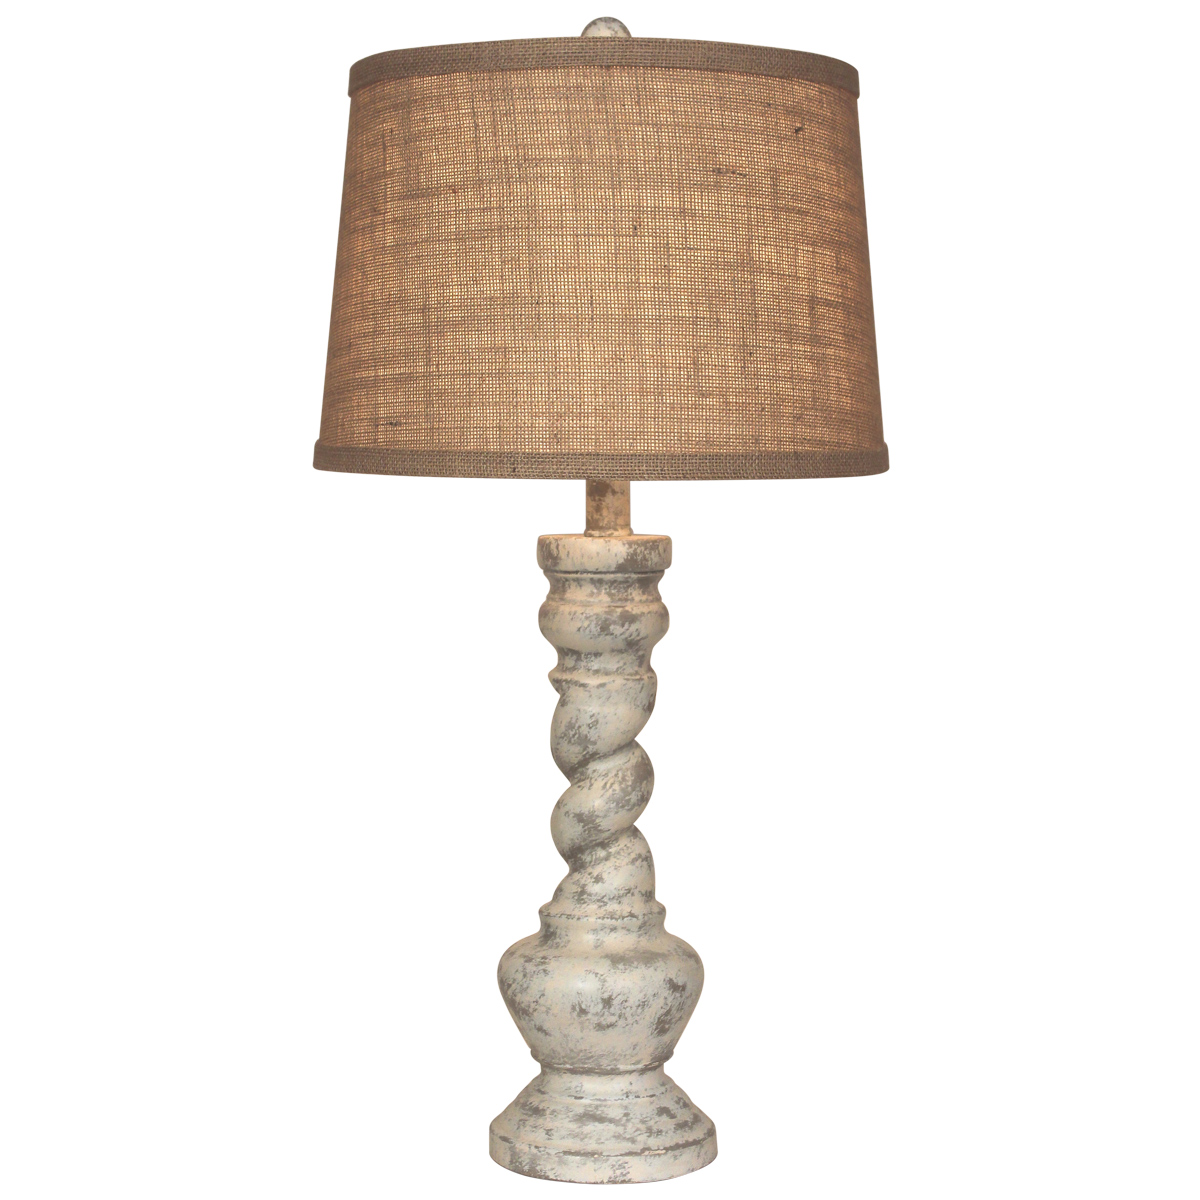 Swirled Faux Stone Table Lamp